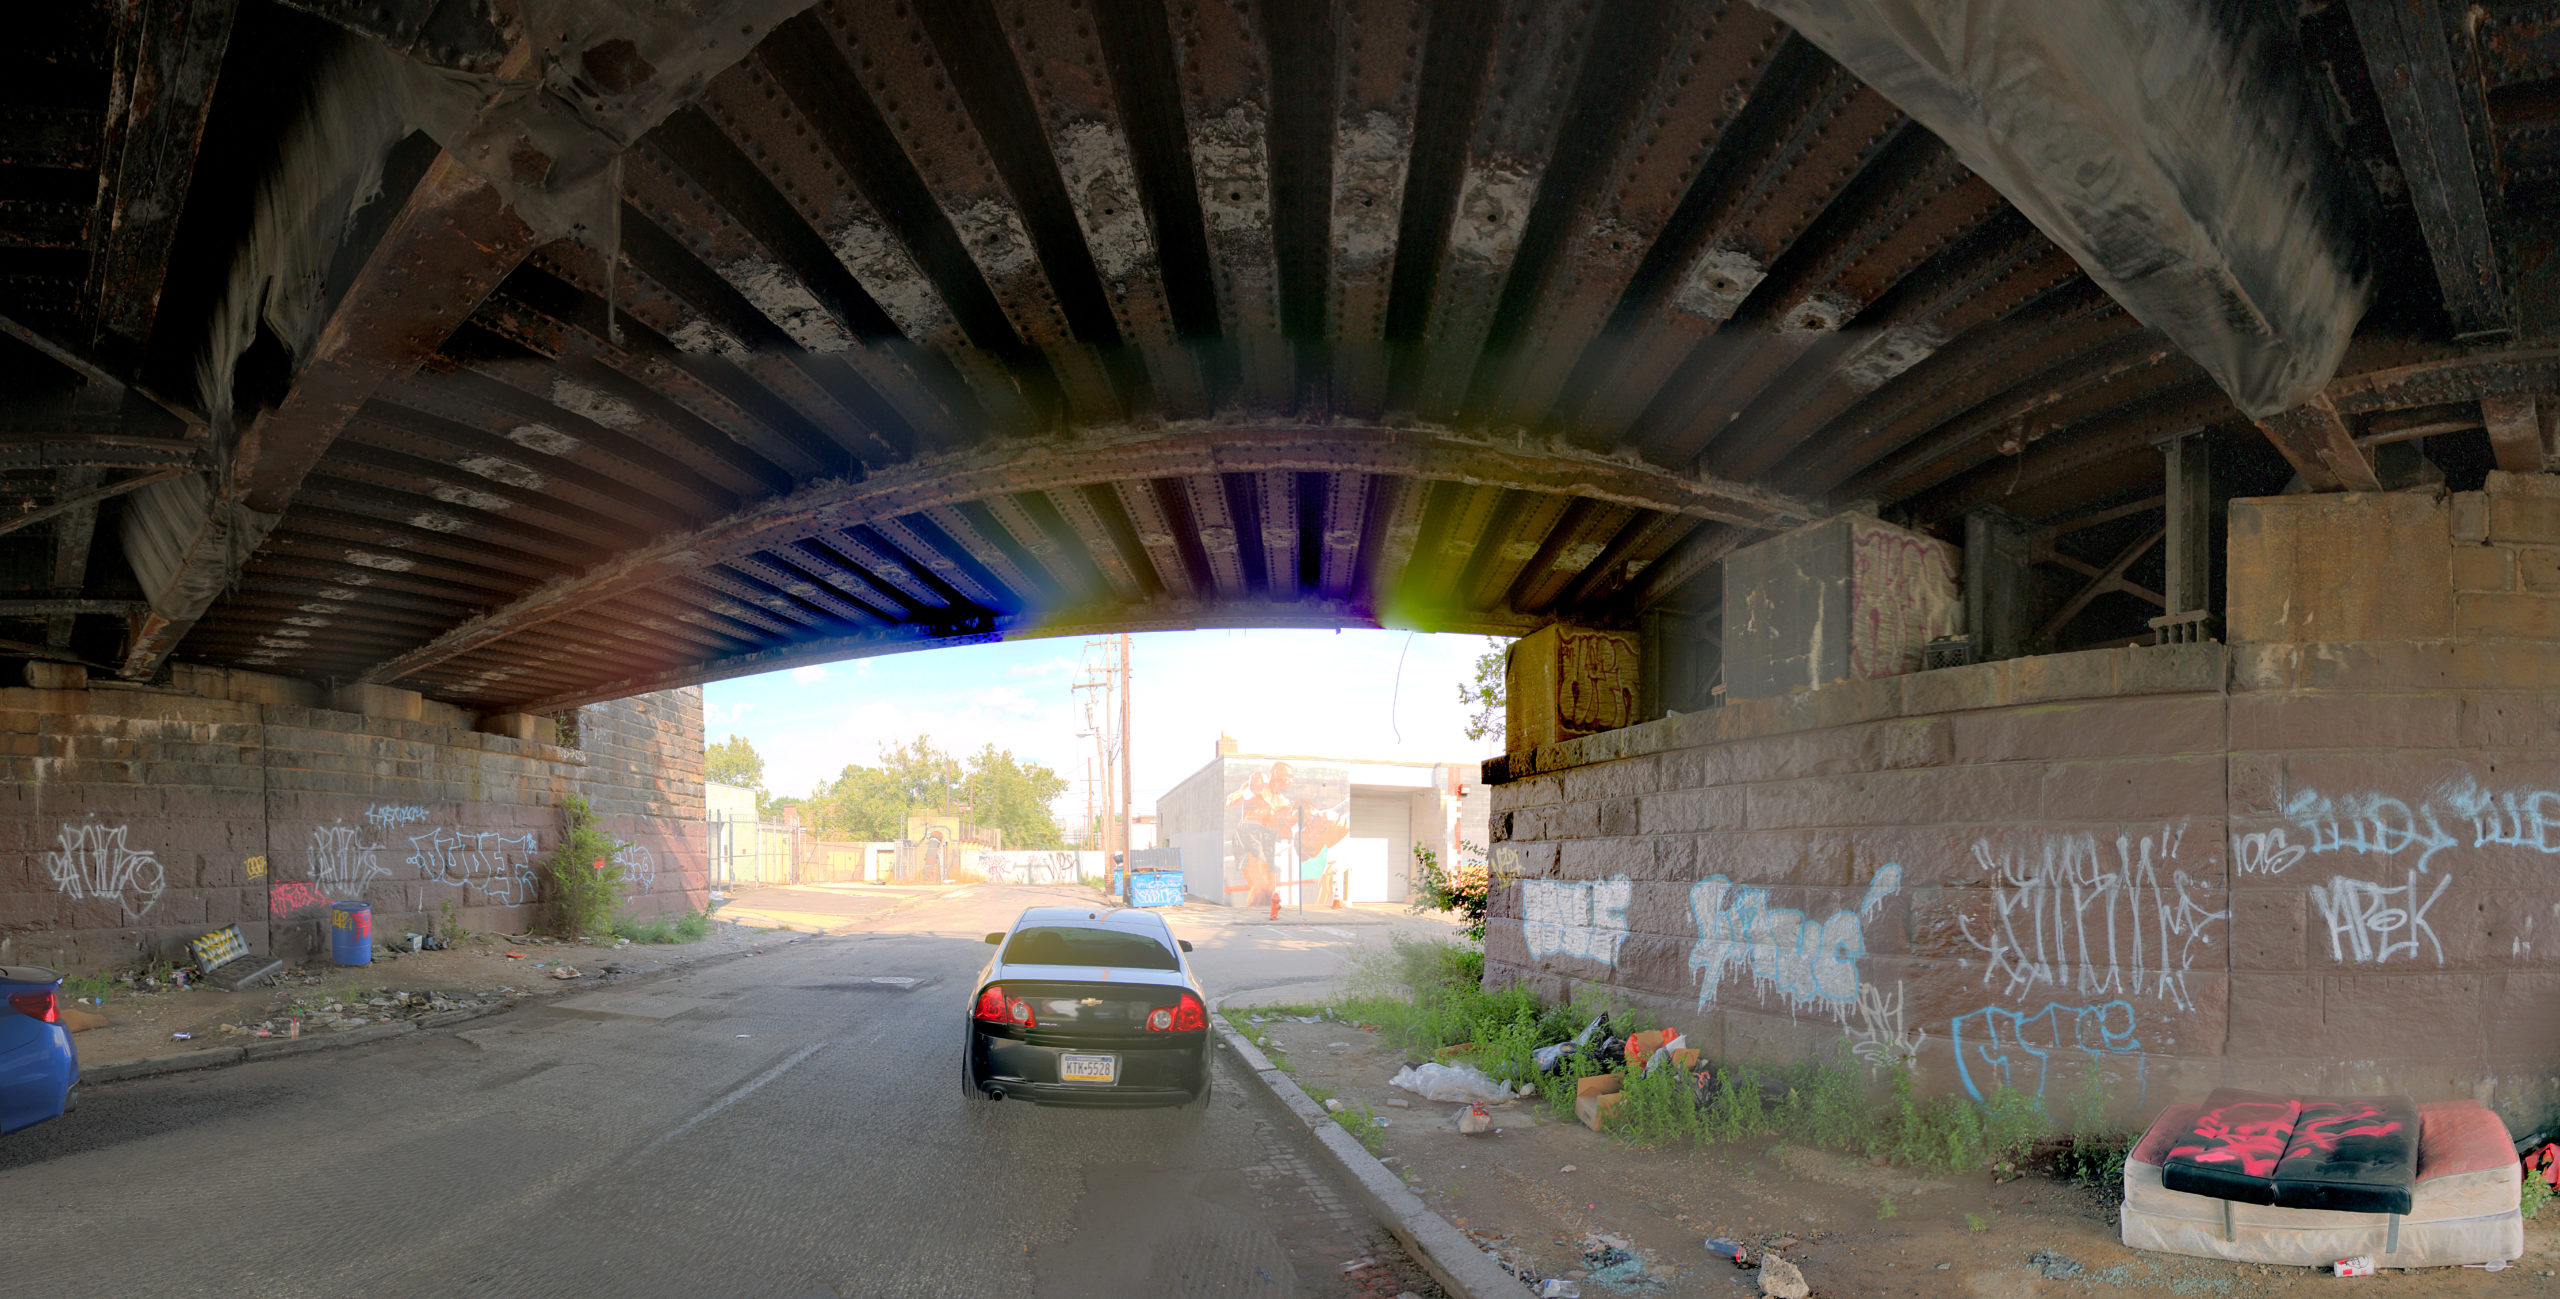 Reading Viaduct 575 N 9th St Philadelphia, PA Copyright 2020, Bob Bruhin. All rights reserved.